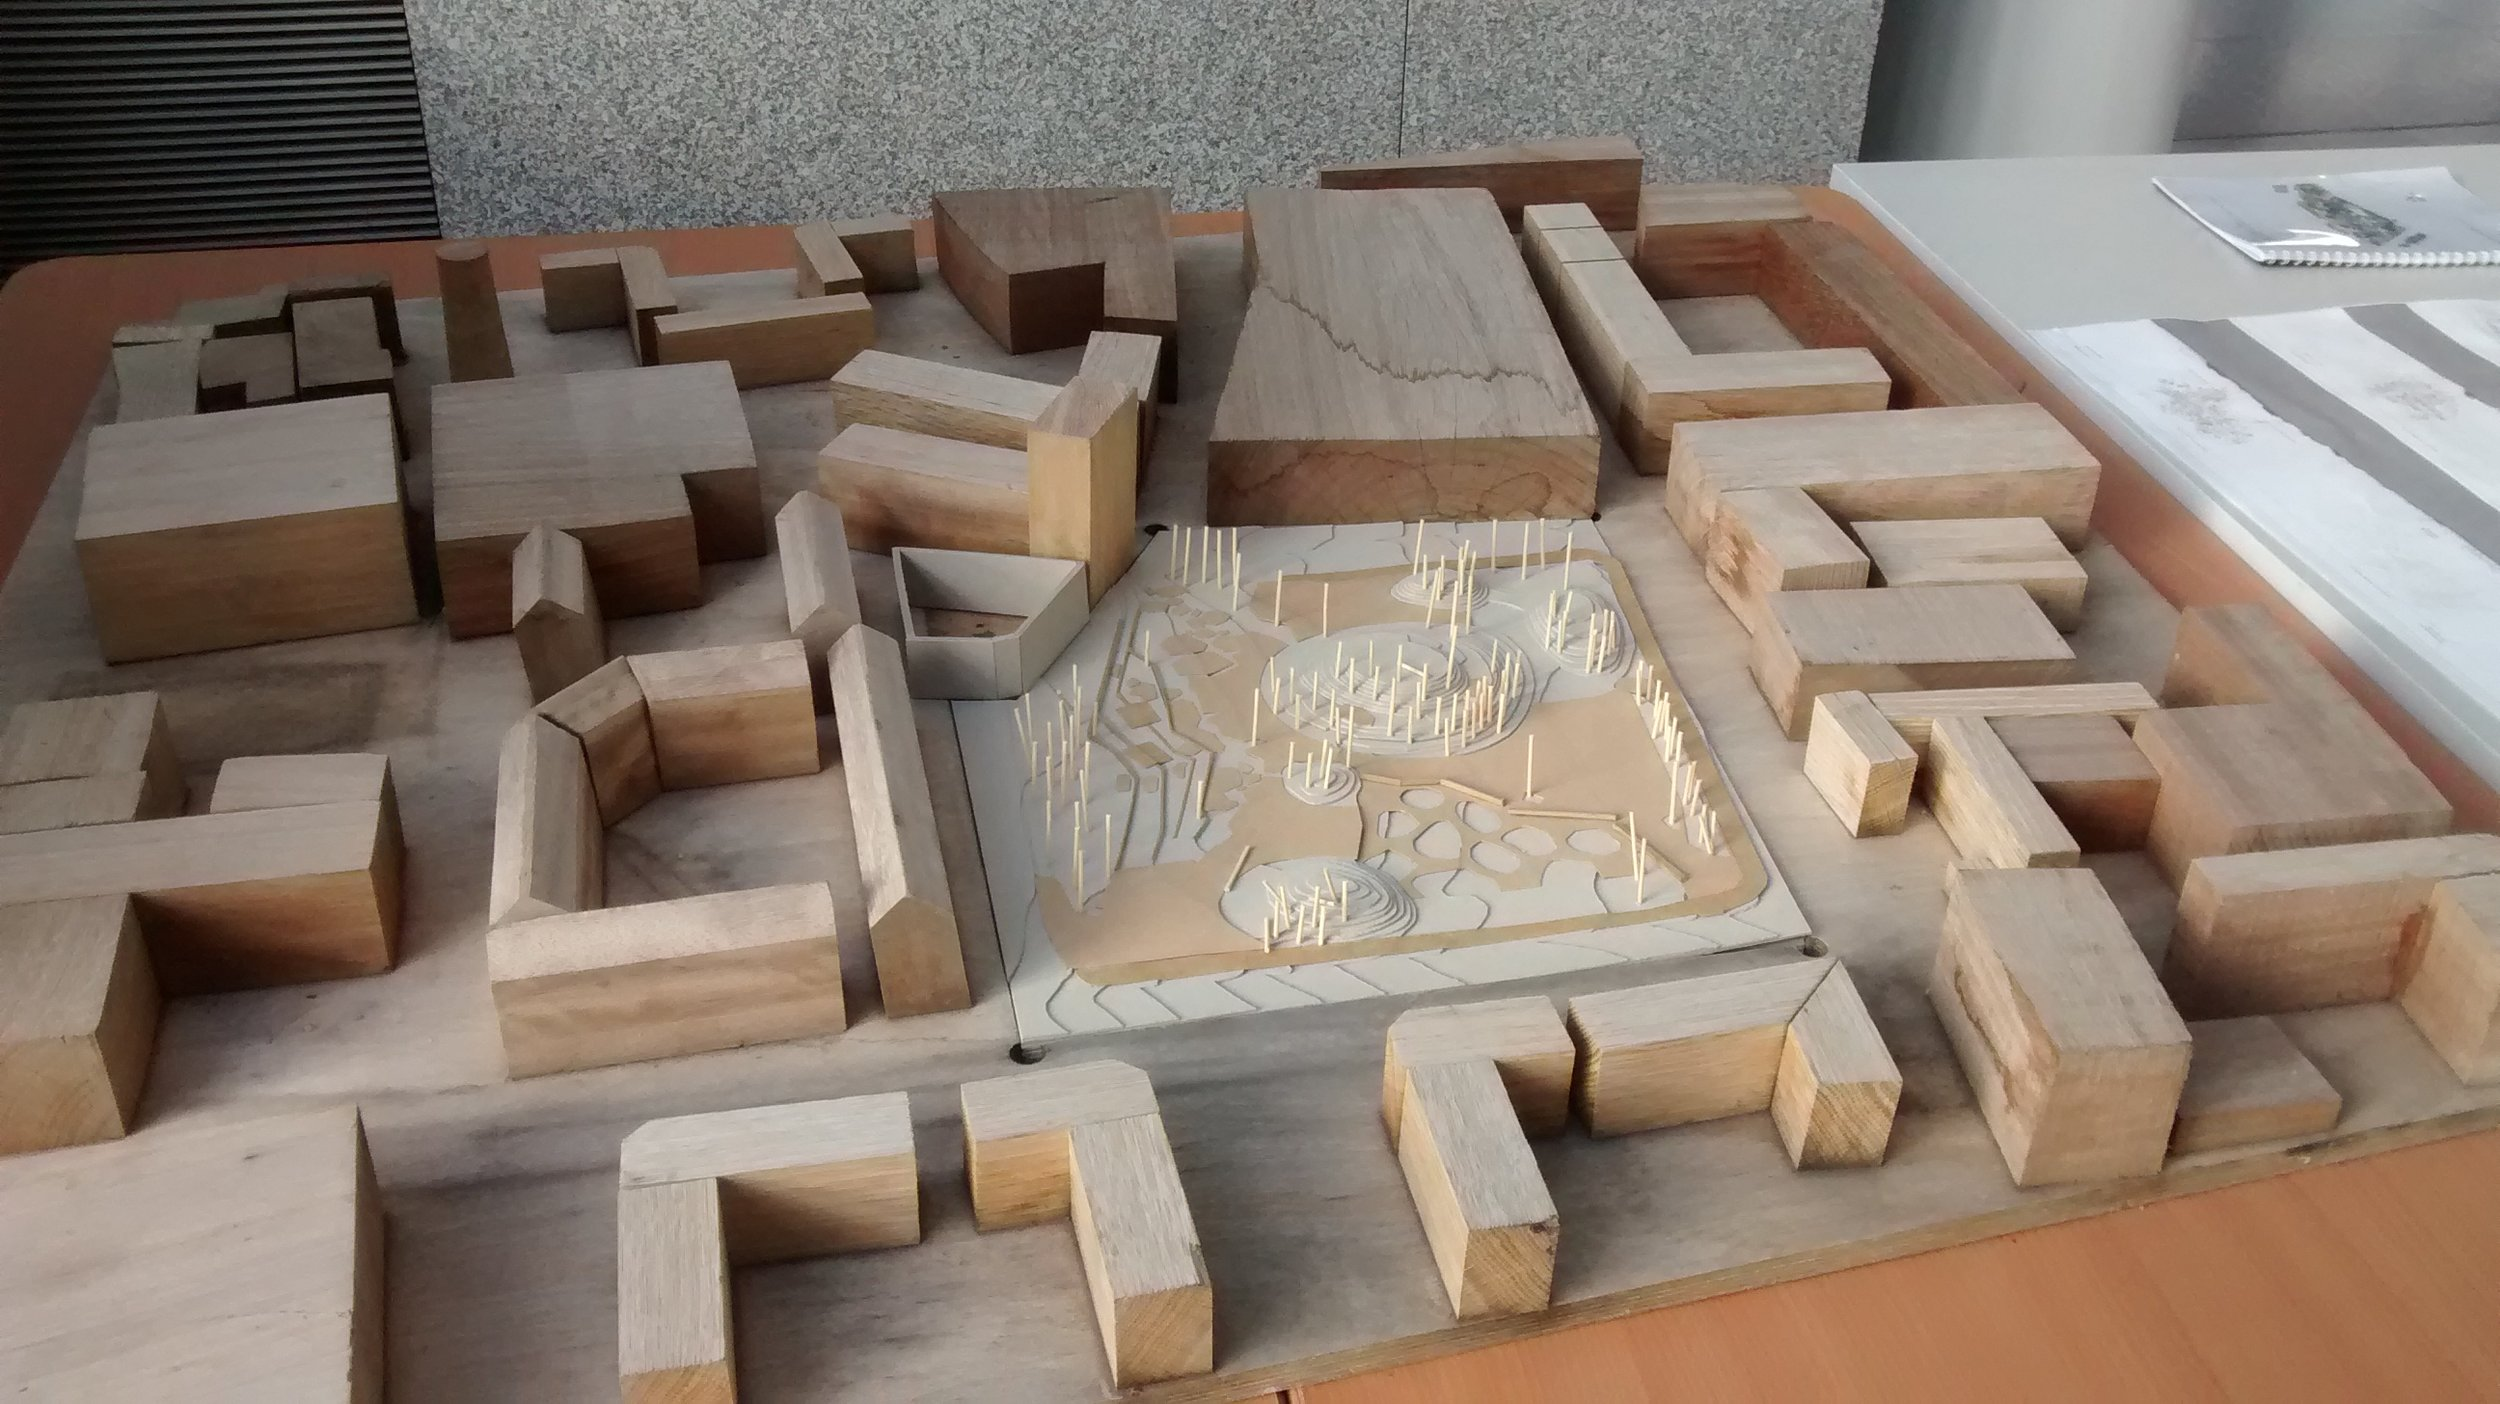 Area model in a safe space @ DCC offices   Made by NCAD students with support from Bridgefoot street park campaigne